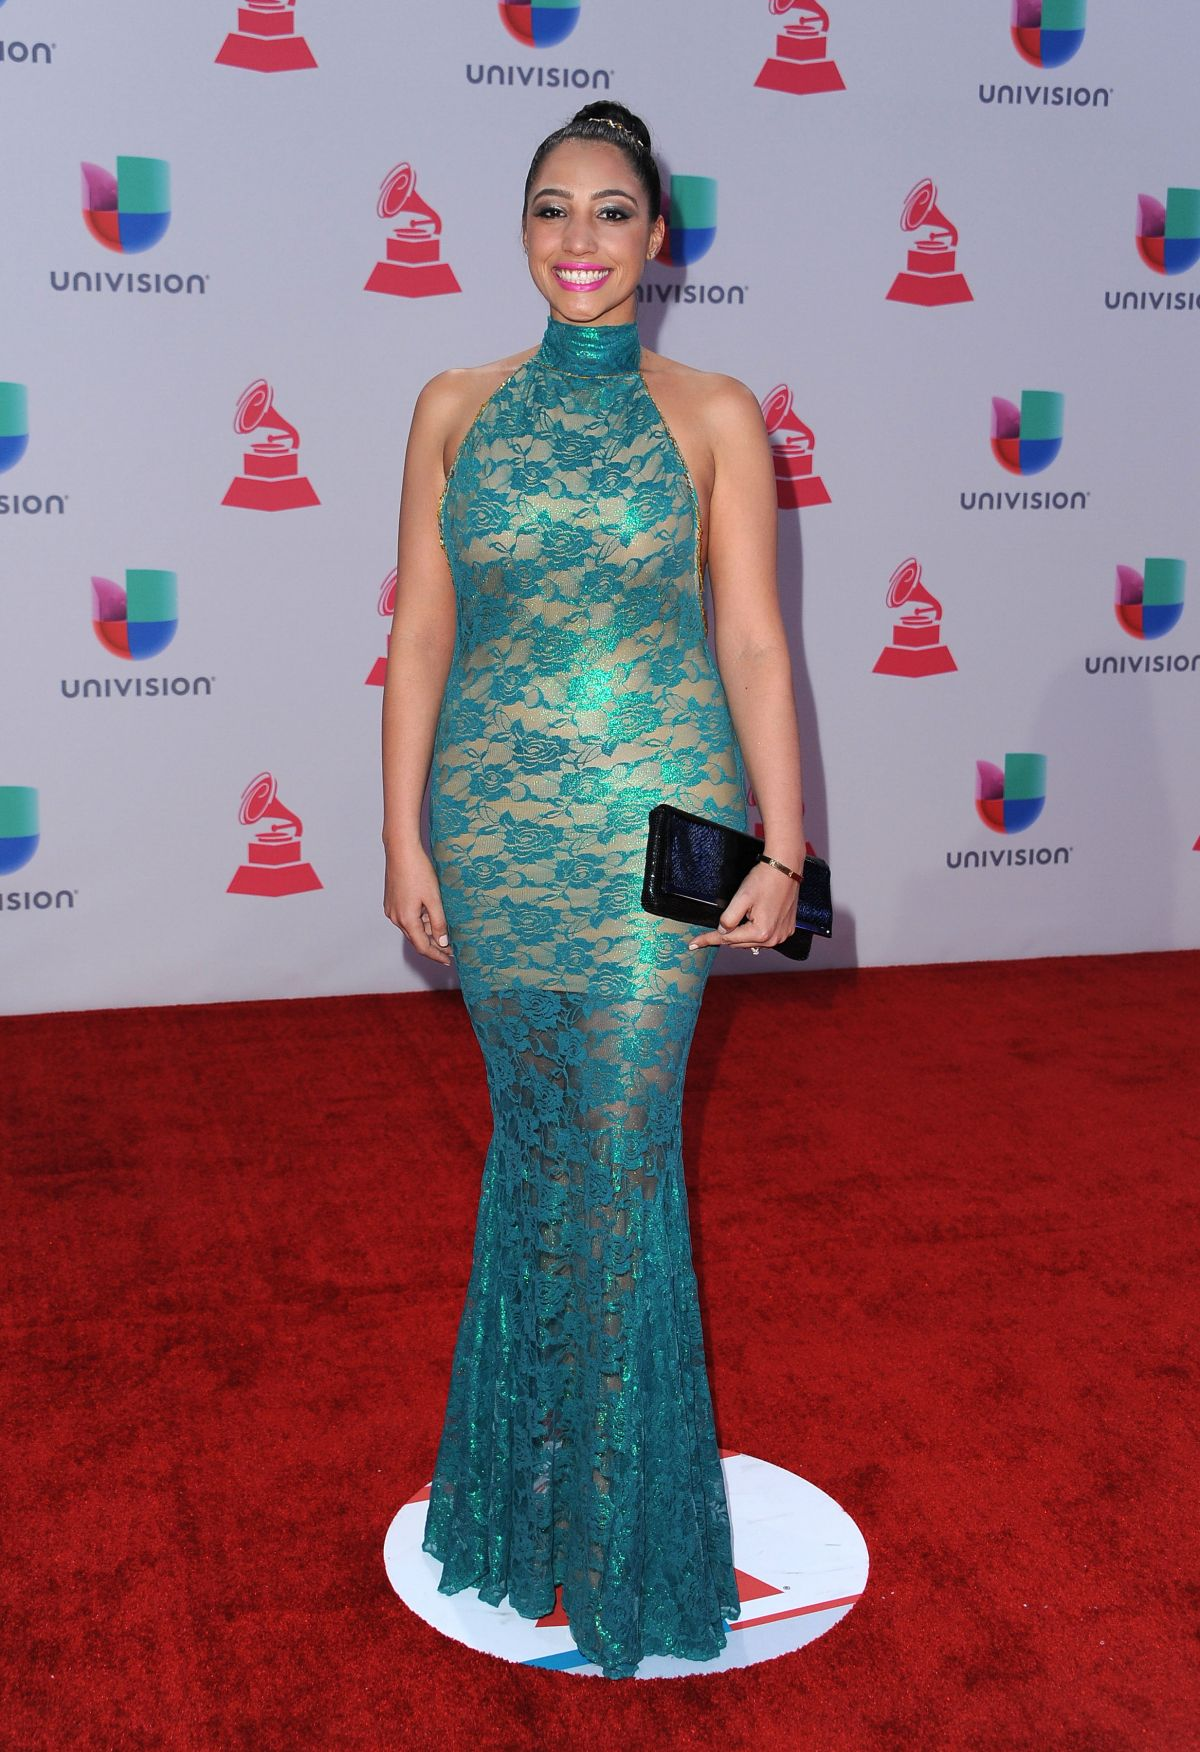 LESLIE CARTAYA at 2015 Latin Grammy Awards in Las Vegas 11/18/2015